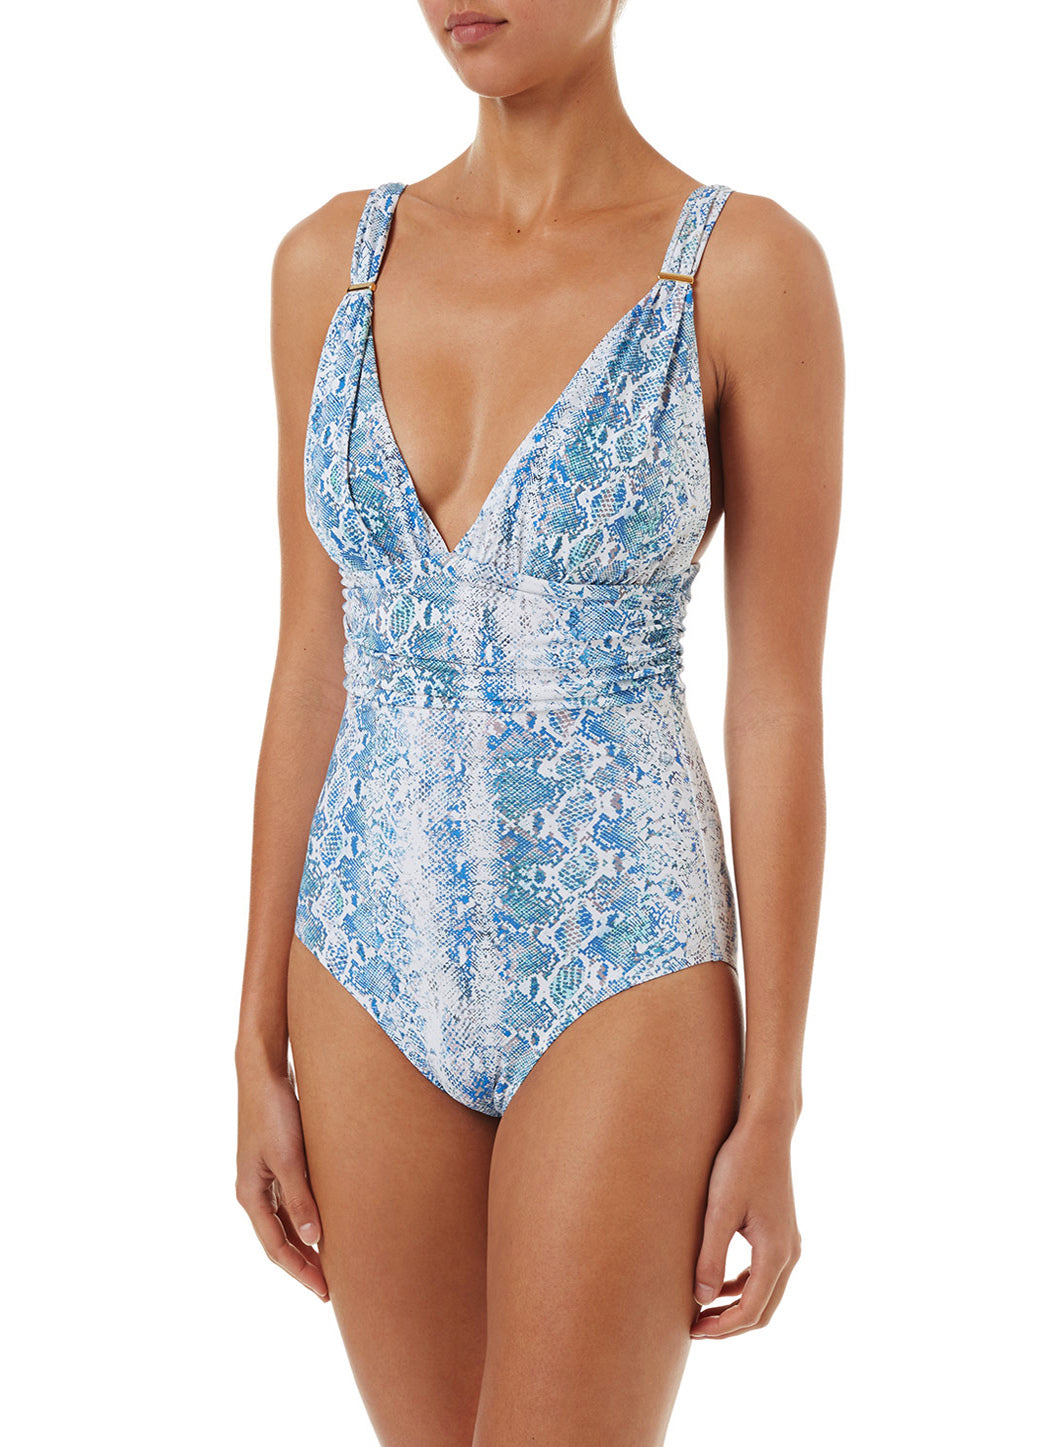 Panarea Serpente Classic Over The Shoulder Ruched Swimsuit